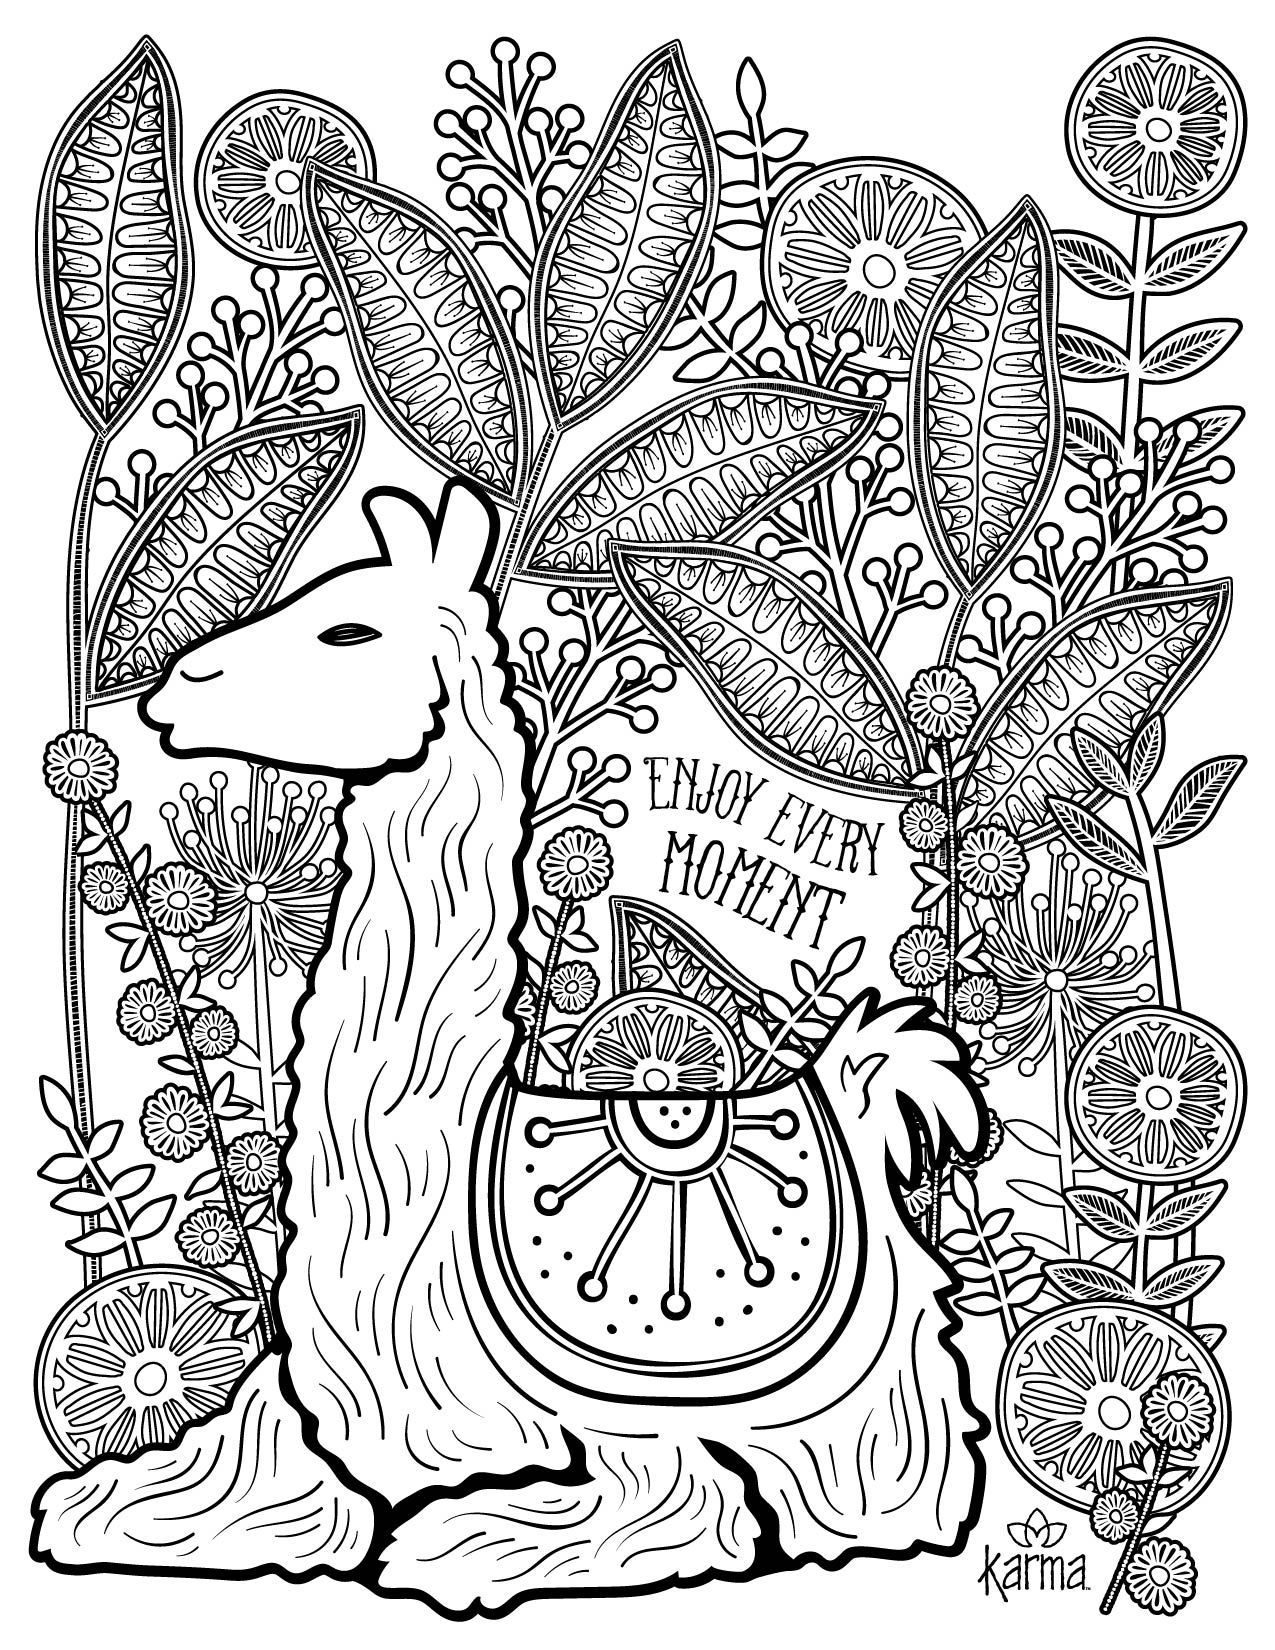 llama coloring pages Llama! Free and printable coloring page by Karma Gifts | Adult  llama coloring pages